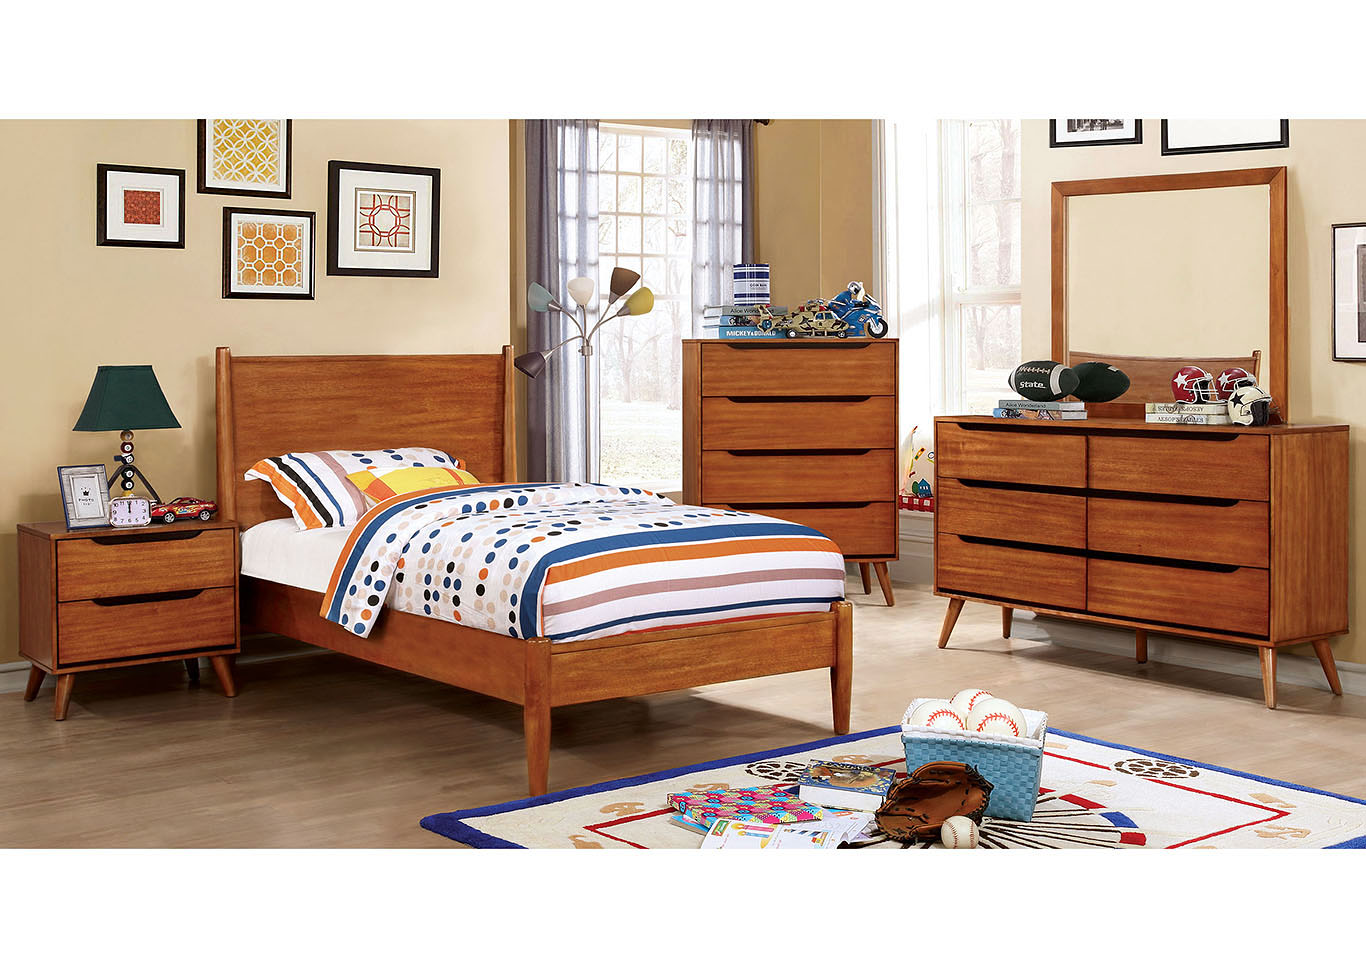 Lennart I Oak Twin Platform Bed w/Dresser and Mirror,Furniture of America TX